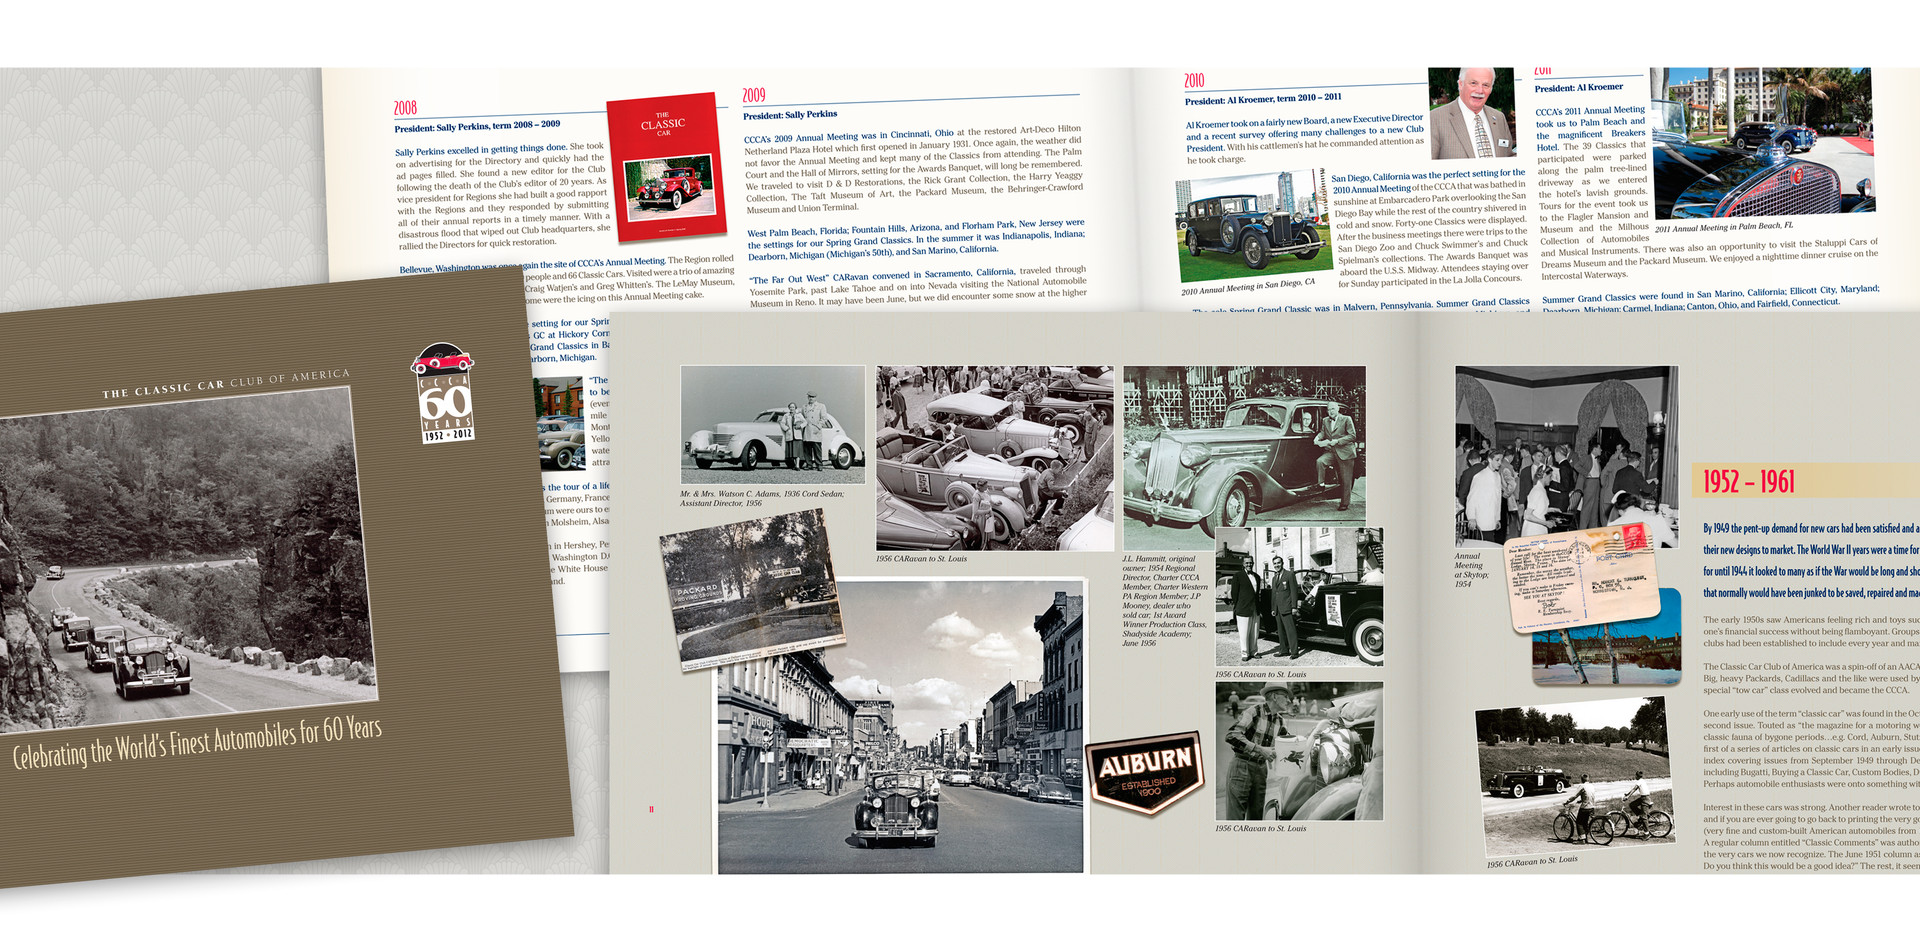 Classic Car Club of America History Book